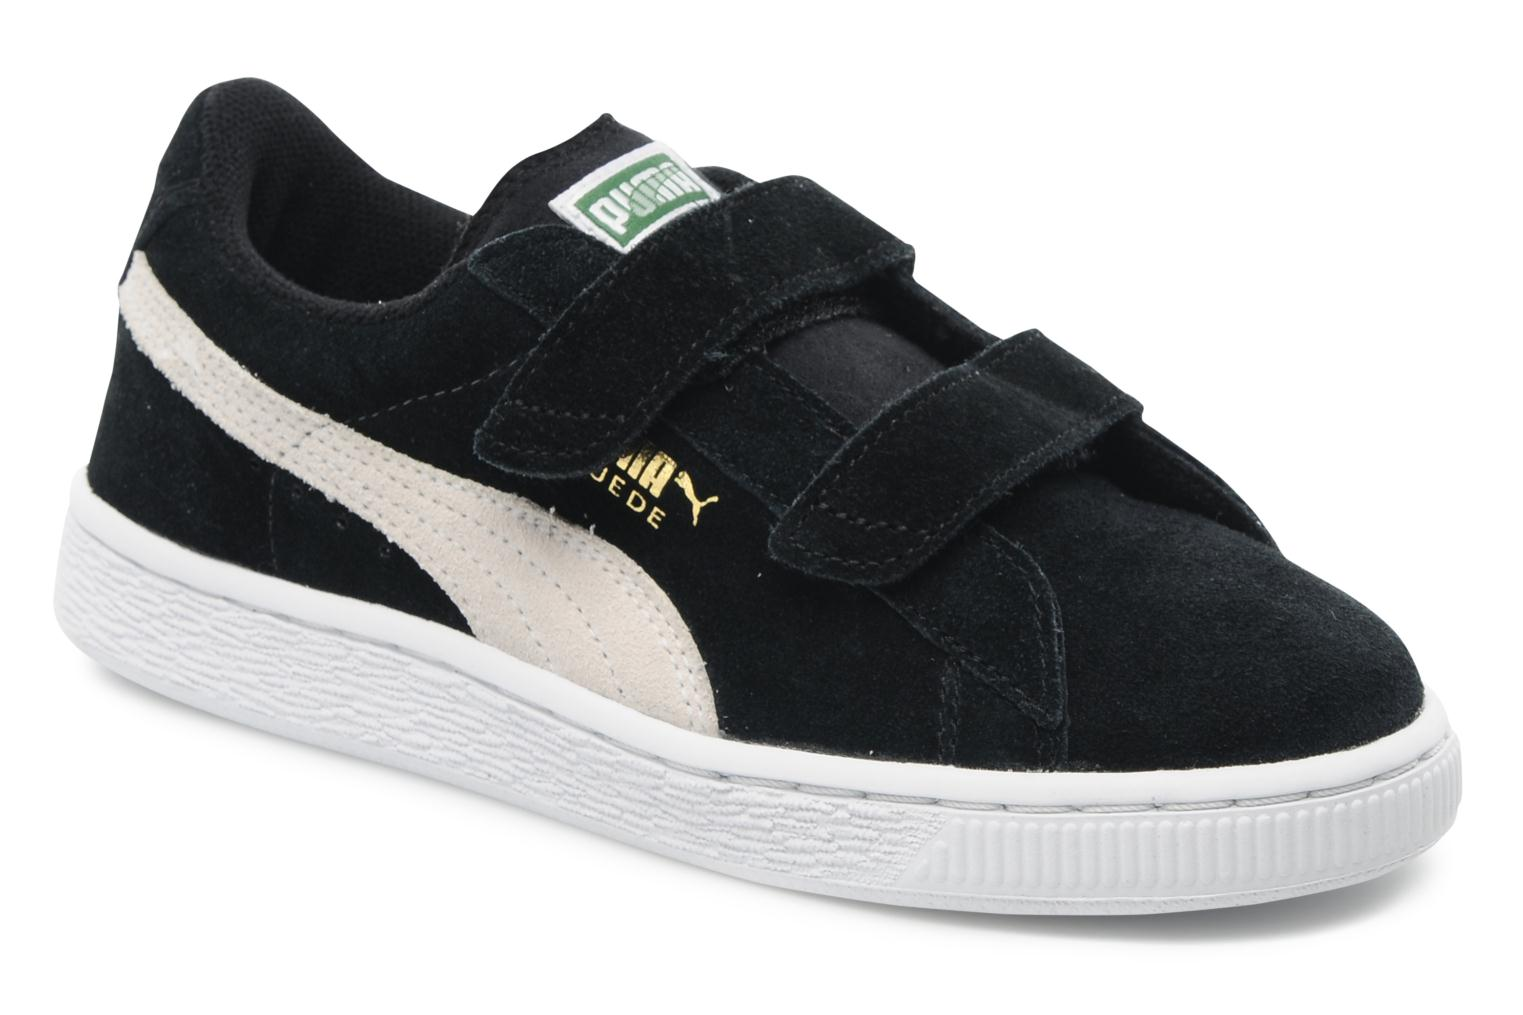 Suede 2 Straps Kids. black-limoges-team gold